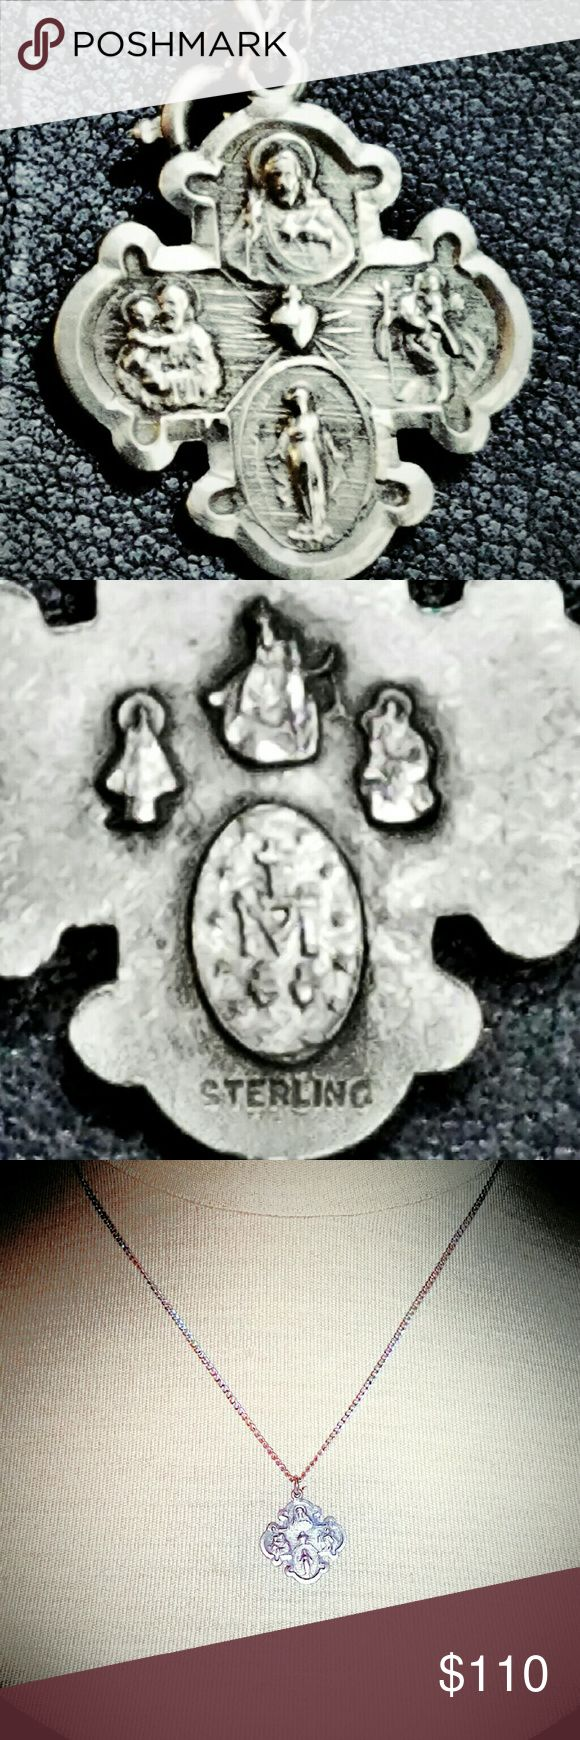 VTG Sterling St Christopher St Joseph Necklace Vintagr Sterling Silver St Christopher St Joseph Cross Medal Pendant Necklace. This is a great vintage religious Catholic Medal with special Cherished Saints; Virgin Mary - Saint St. Christopher. - Saint St. Joseph, and Sacred Heart are the special saints on the cross.On backside: There are also four different illustrations. Marked Sterling on pendant & necklace. Excellent vintage condition. Vintage Jewelry Necklaces